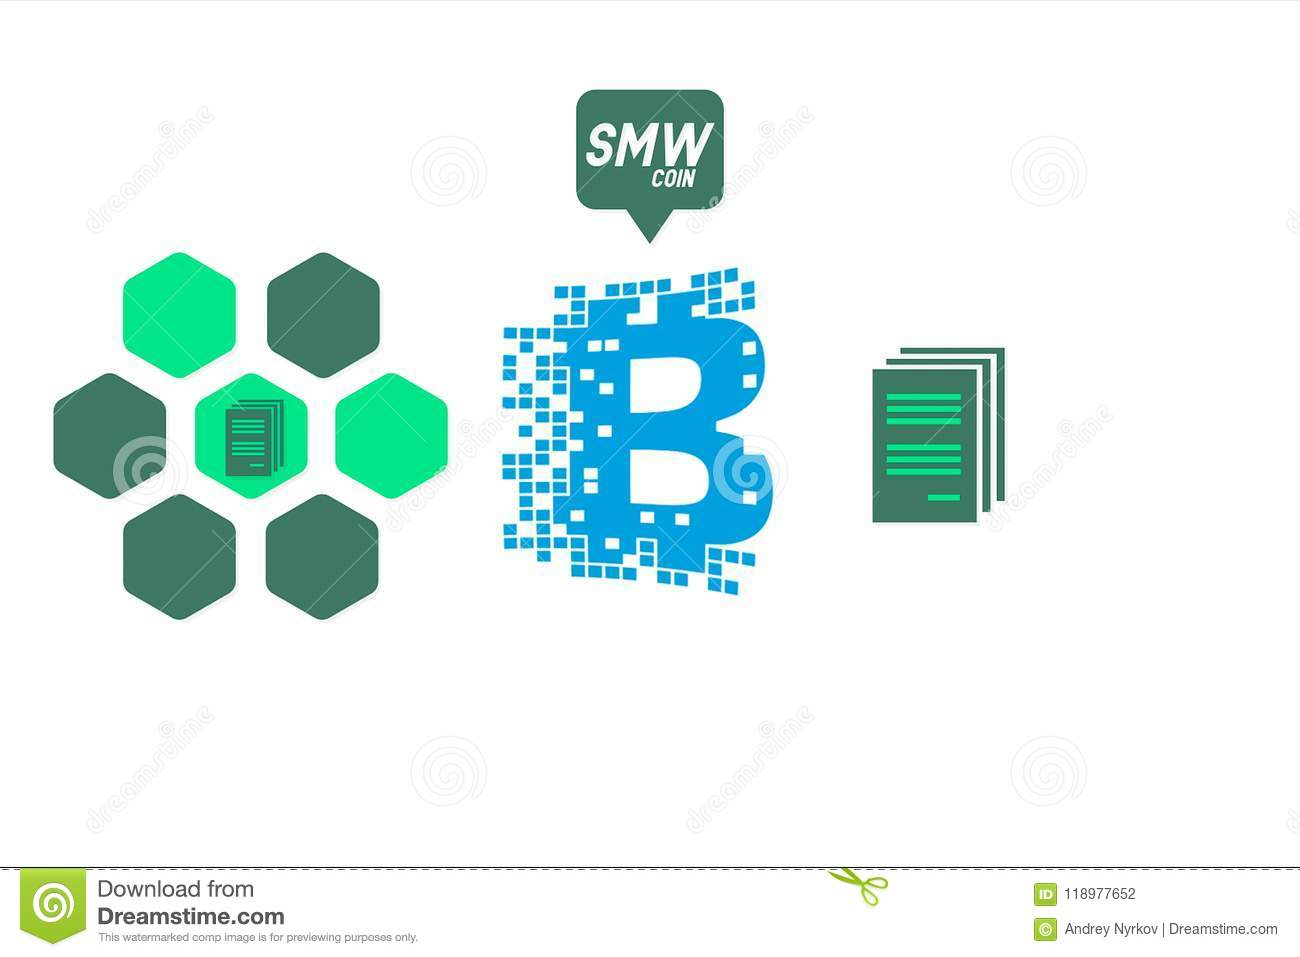 An Example Of Interaction Bitcoin On The Circuit Digital Economy Illustration Crypto Currency